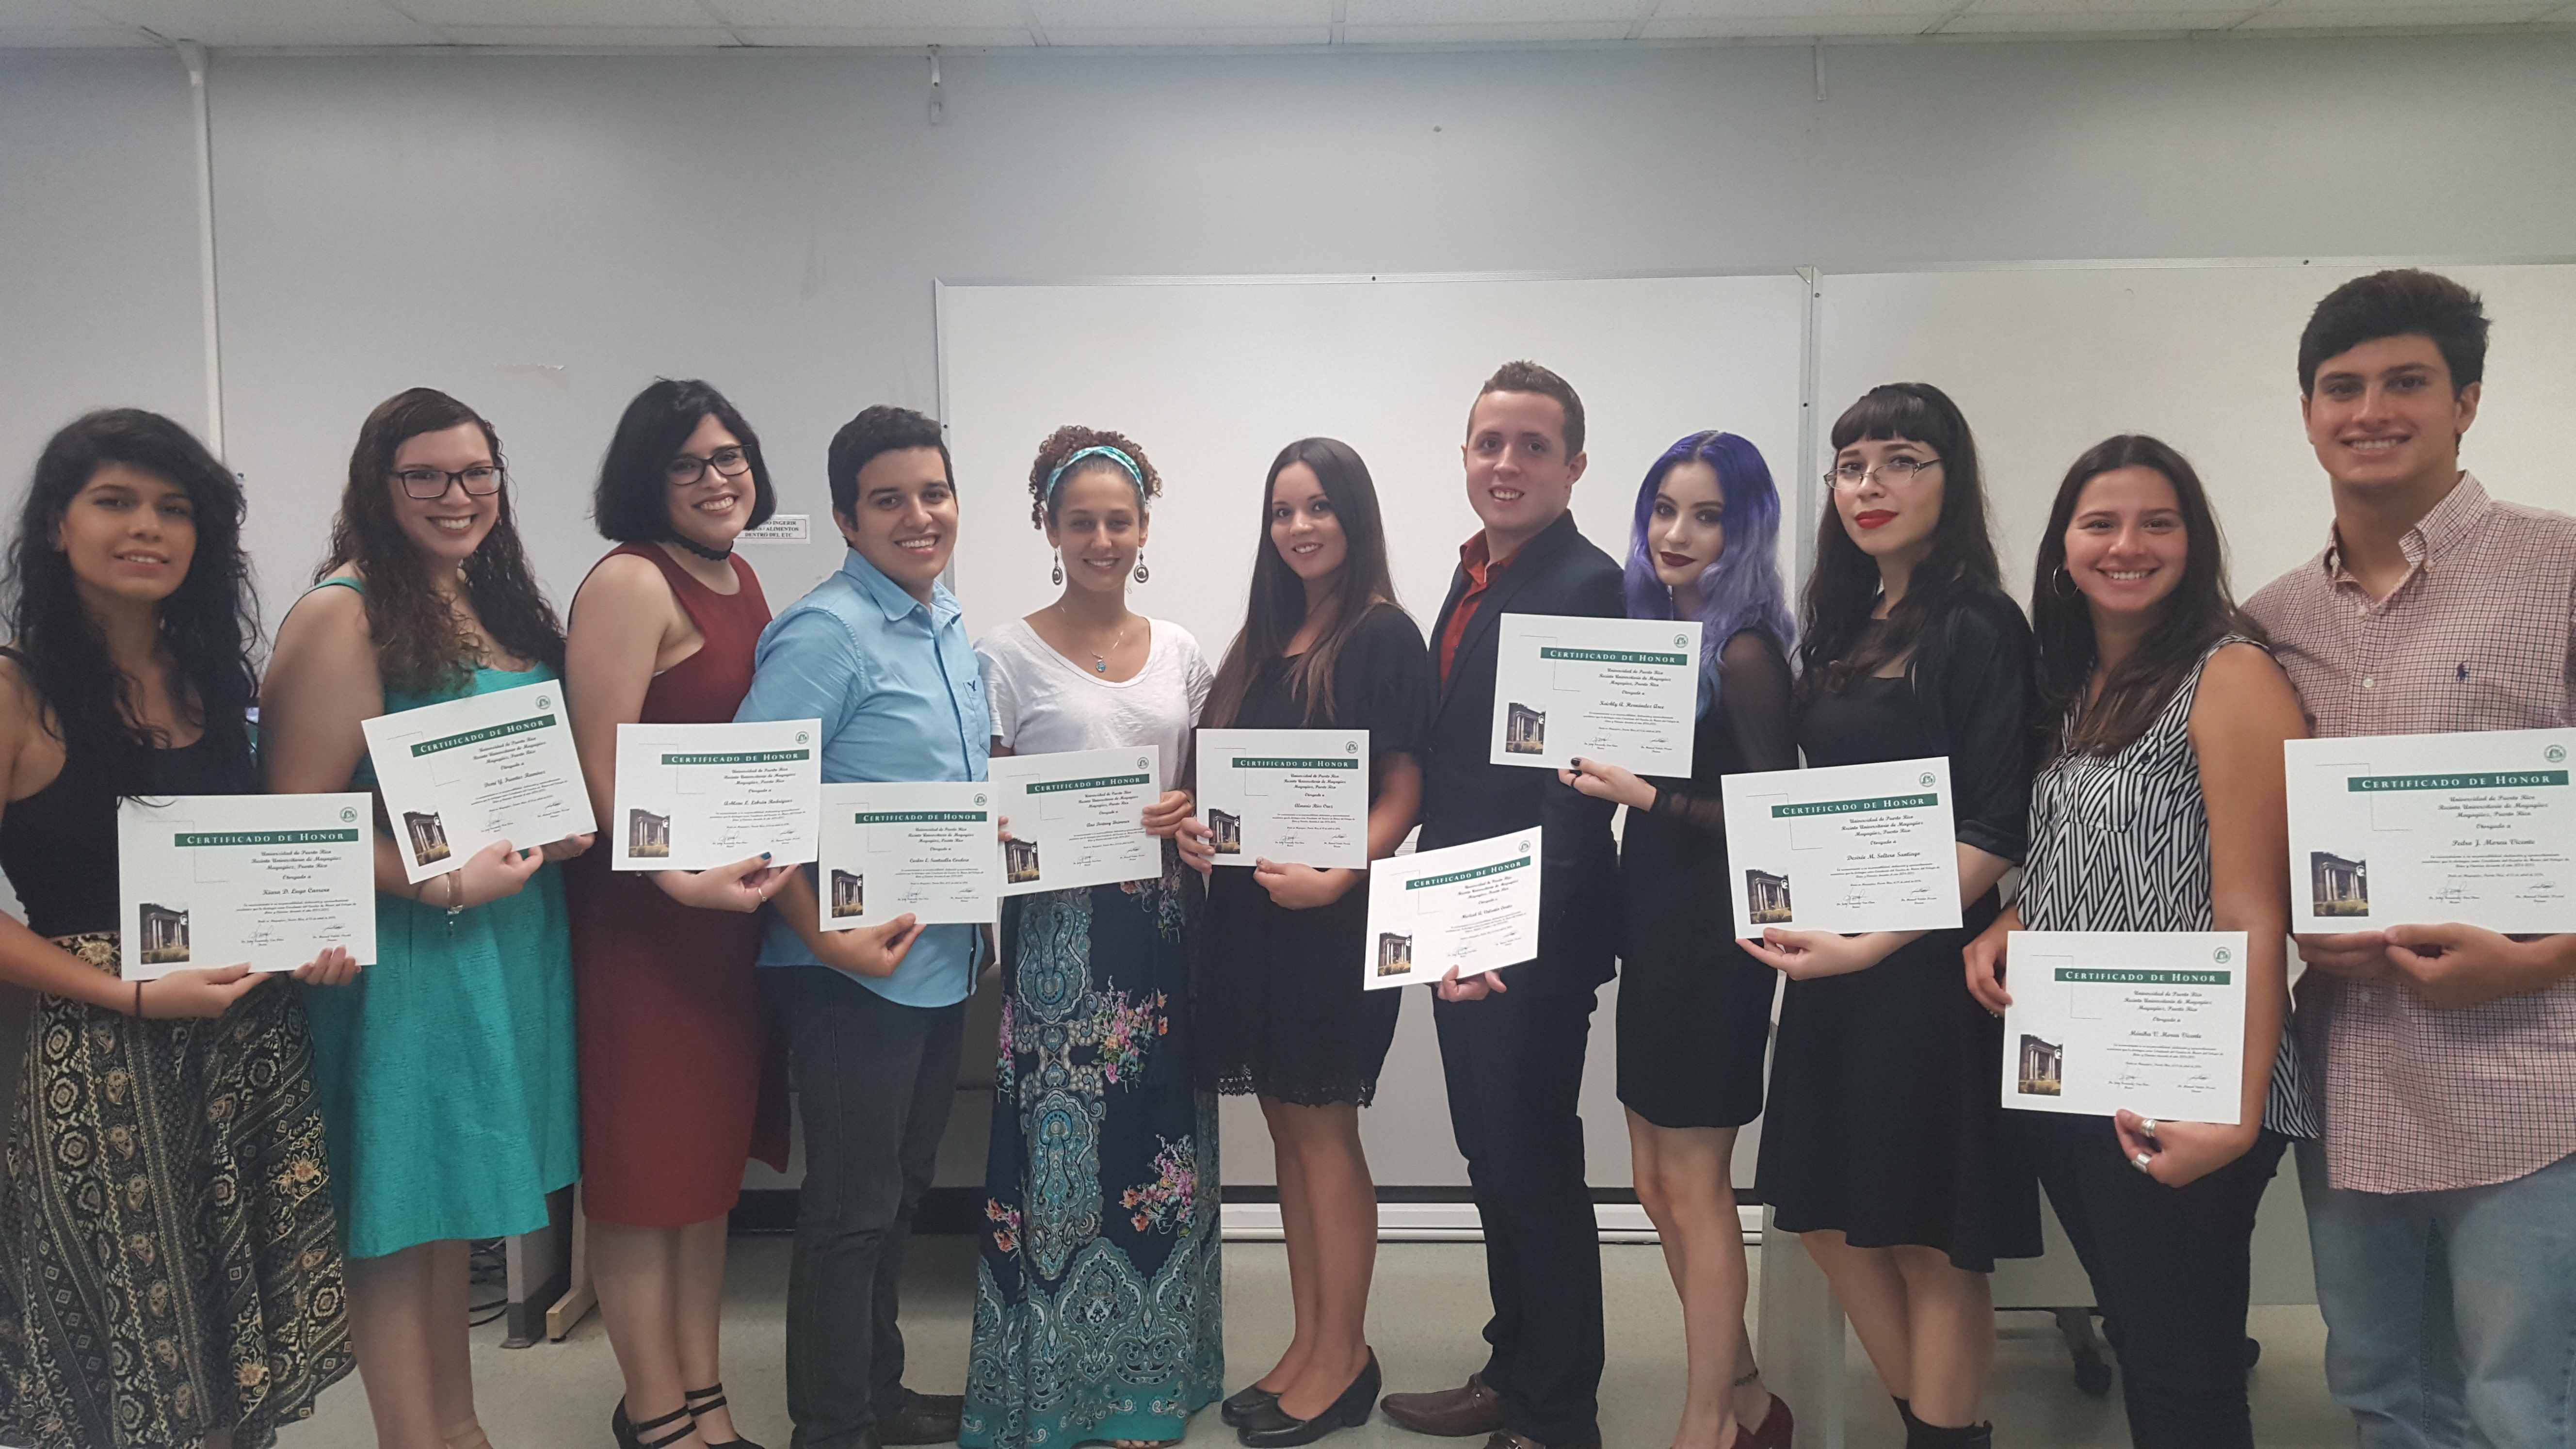 The Honor Roll Students posing for the camera while holding up their certificates.